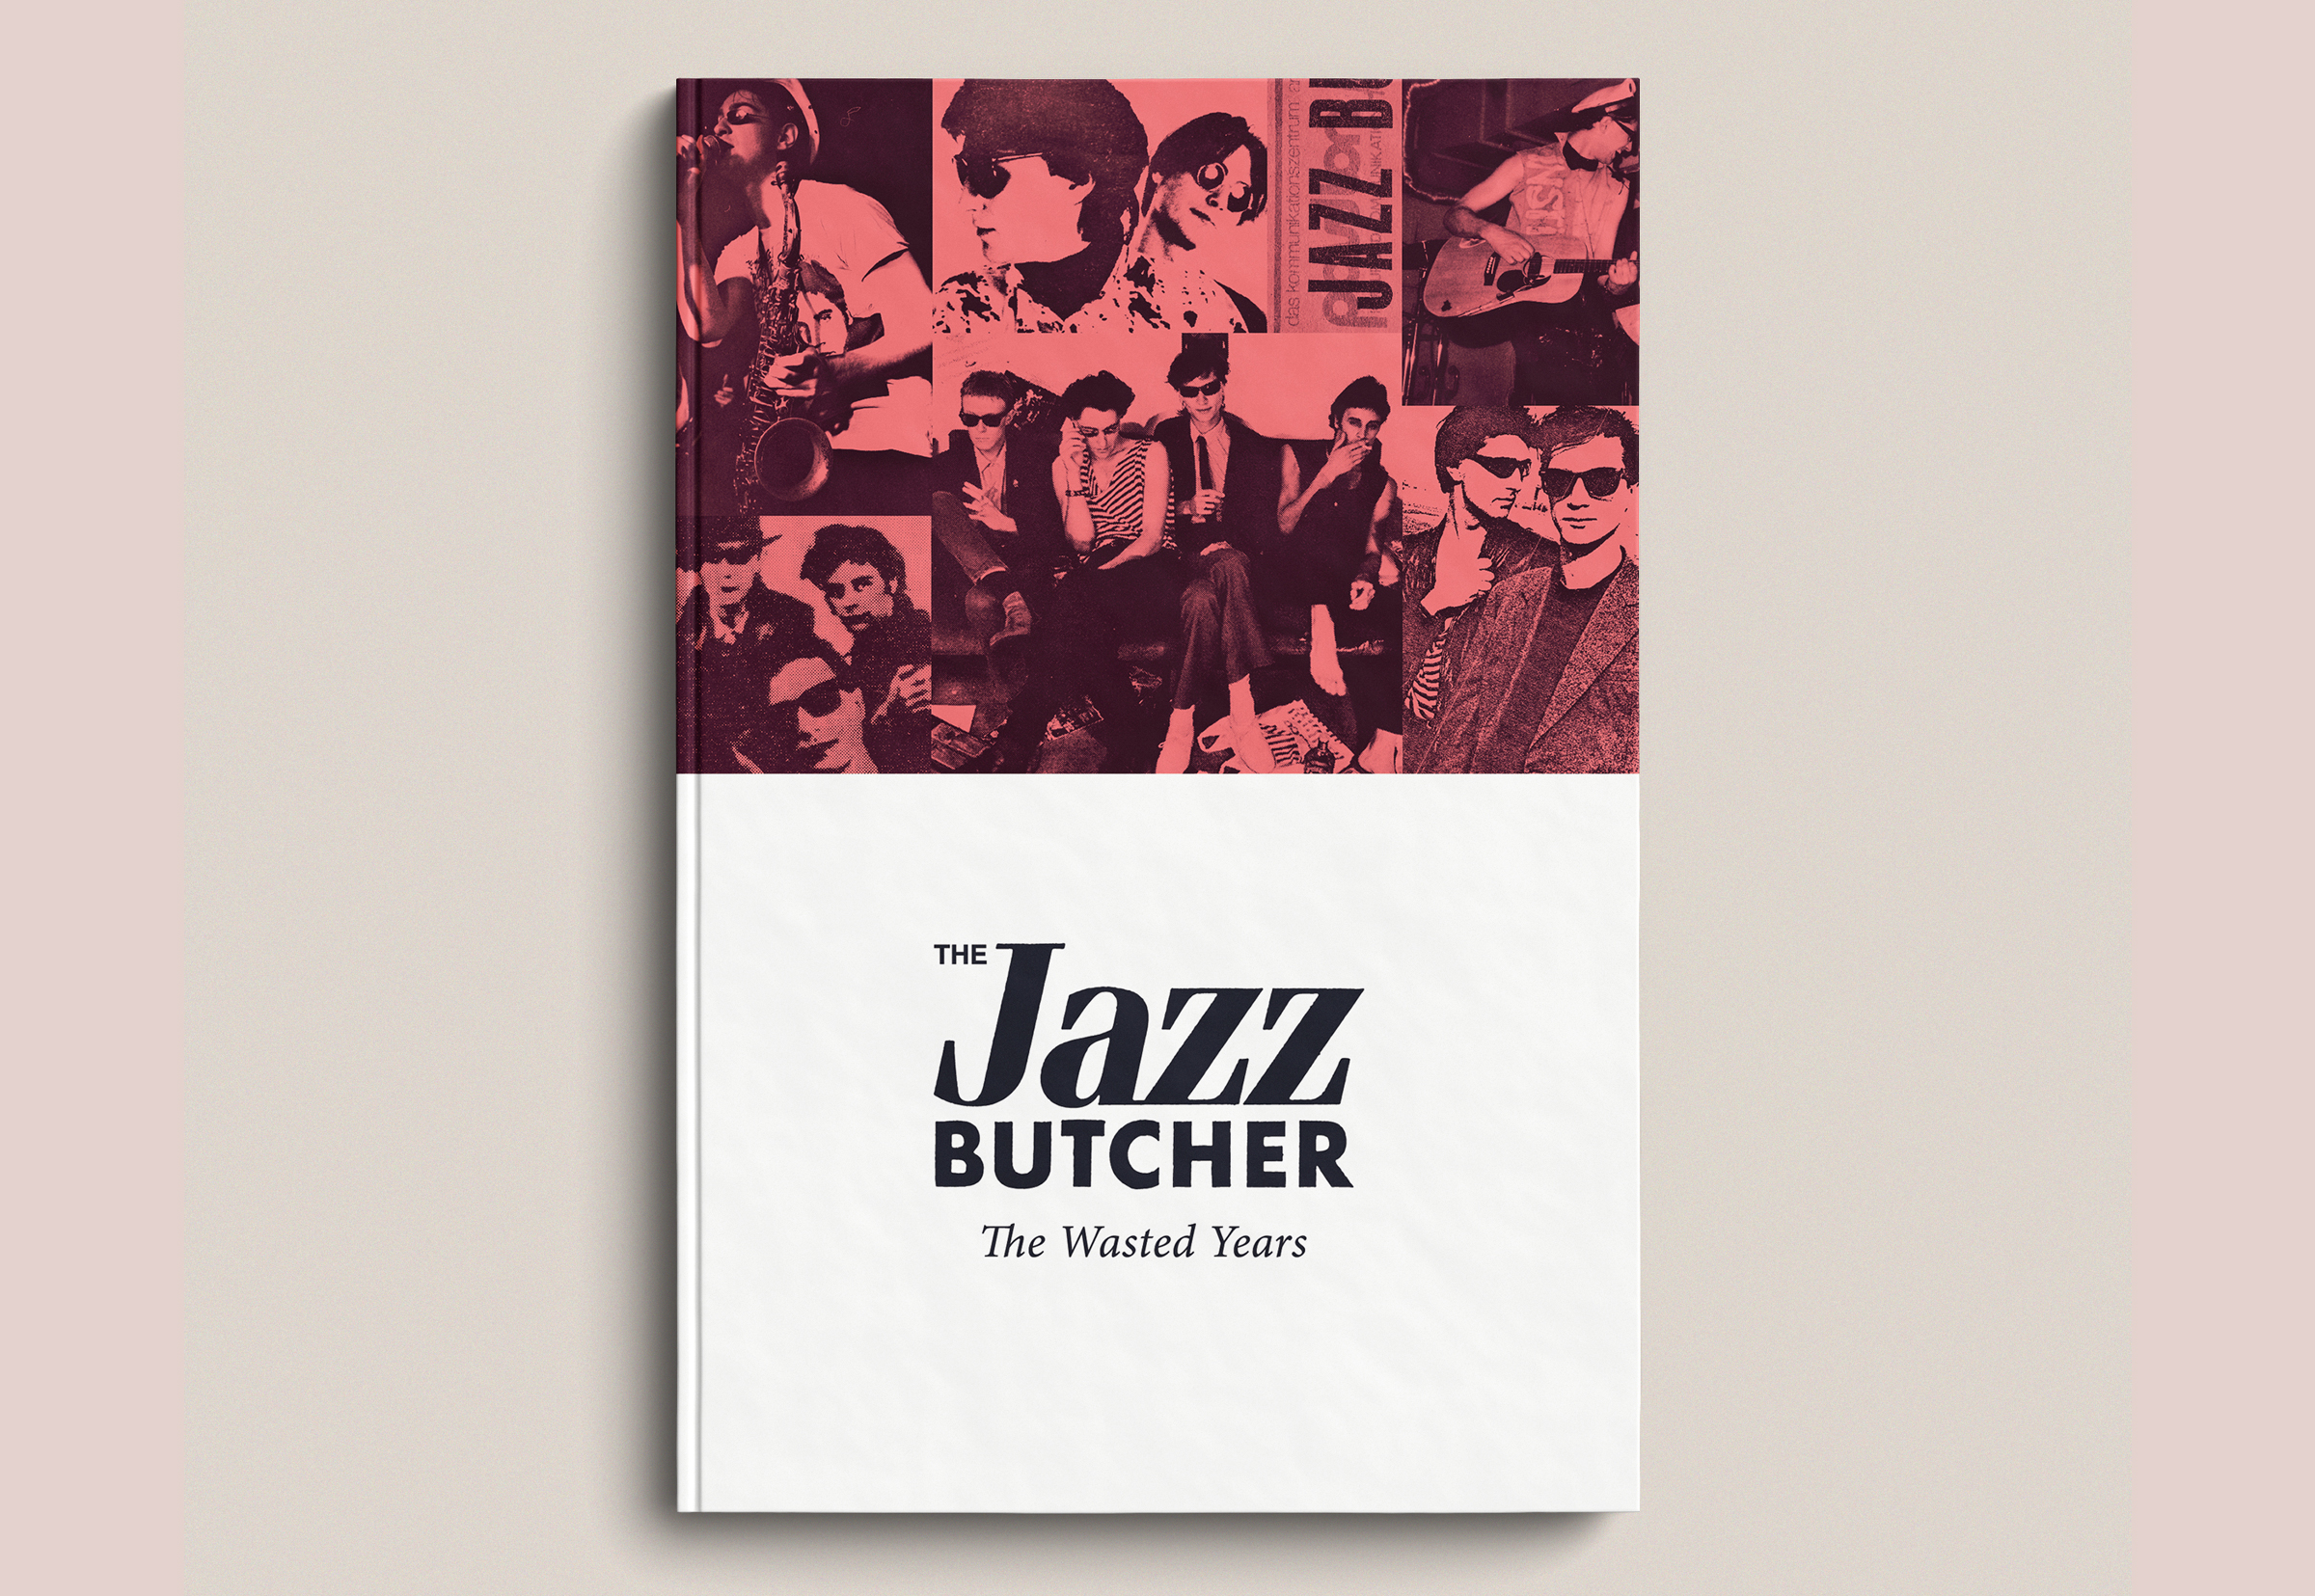 The Jazz Butcher's The Wasted Years Out October 20